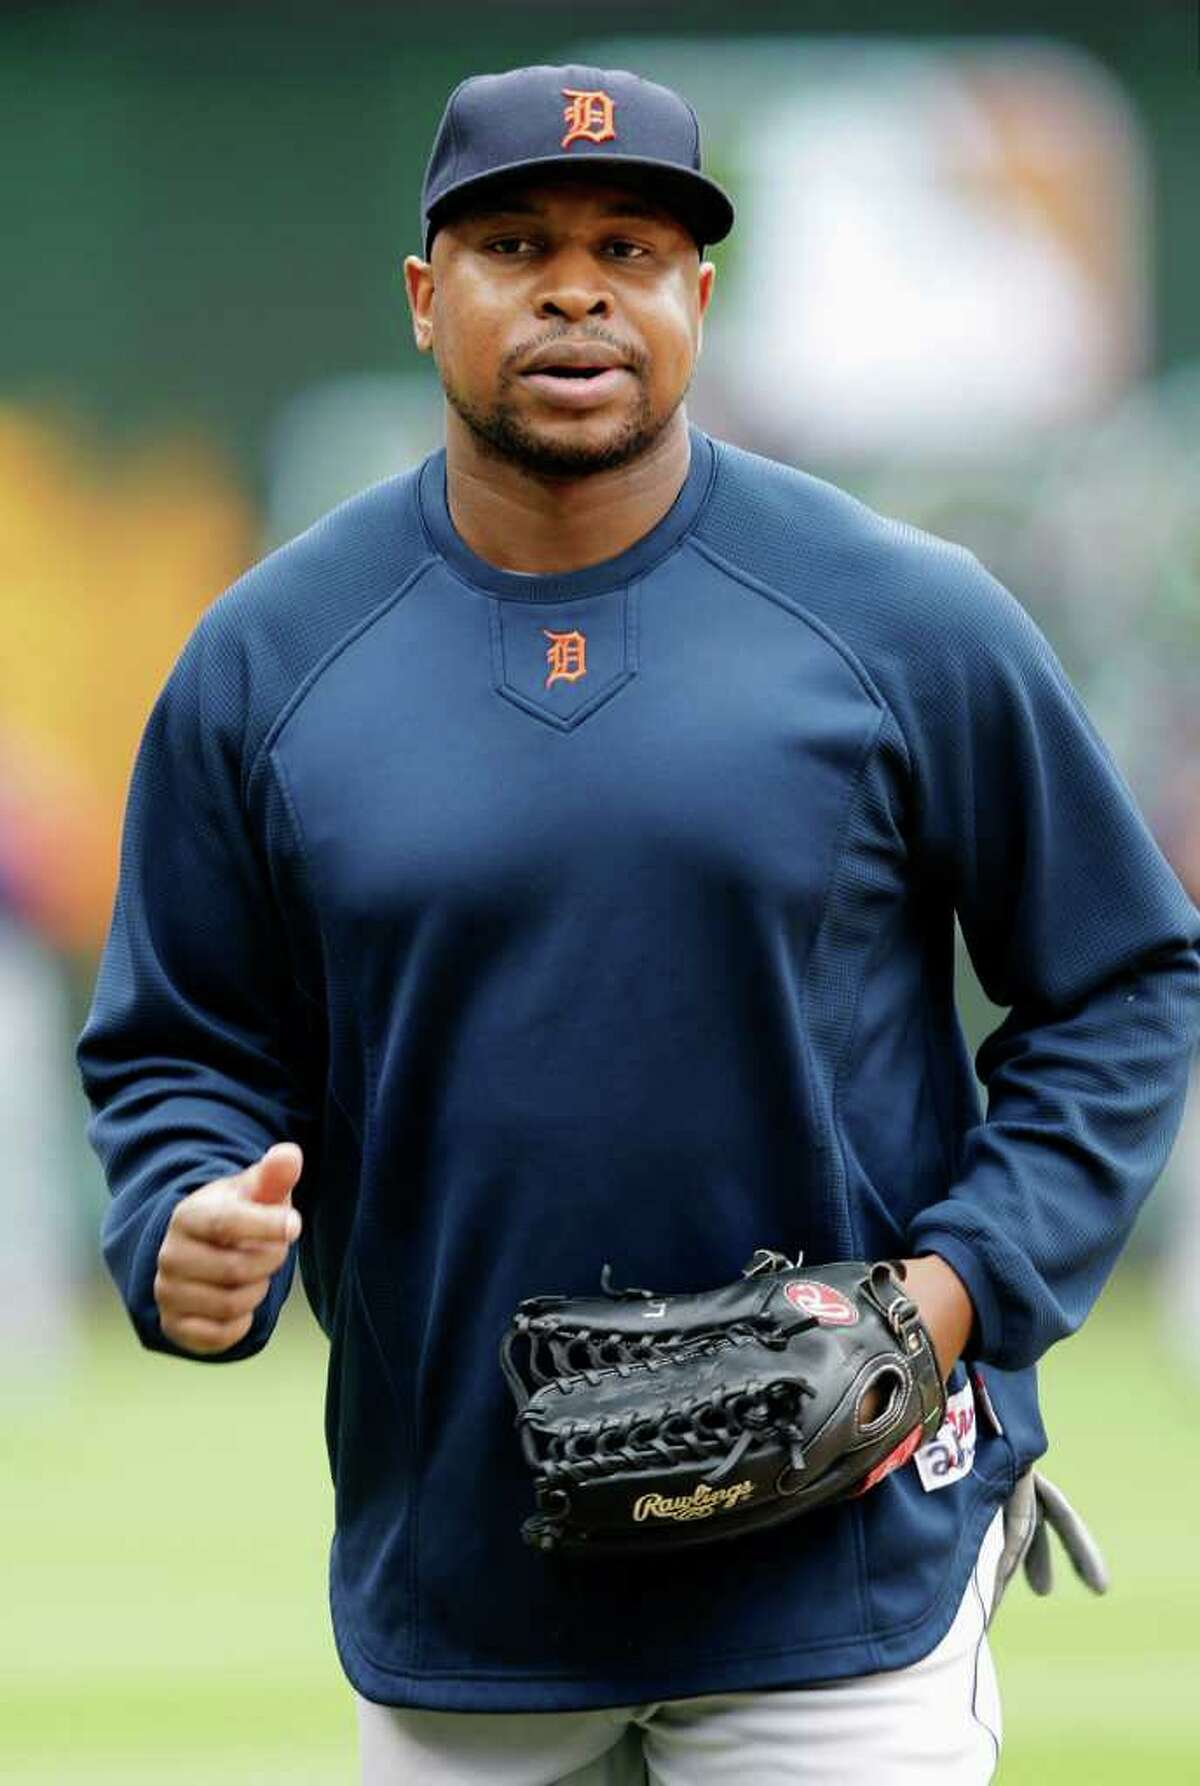 Detroit Tigers' Delmon Young jogs on the field before Game 2 of baseball's American League championship series against the Texas Rangers Monday, Oct. 10, 2011, in Arlington.